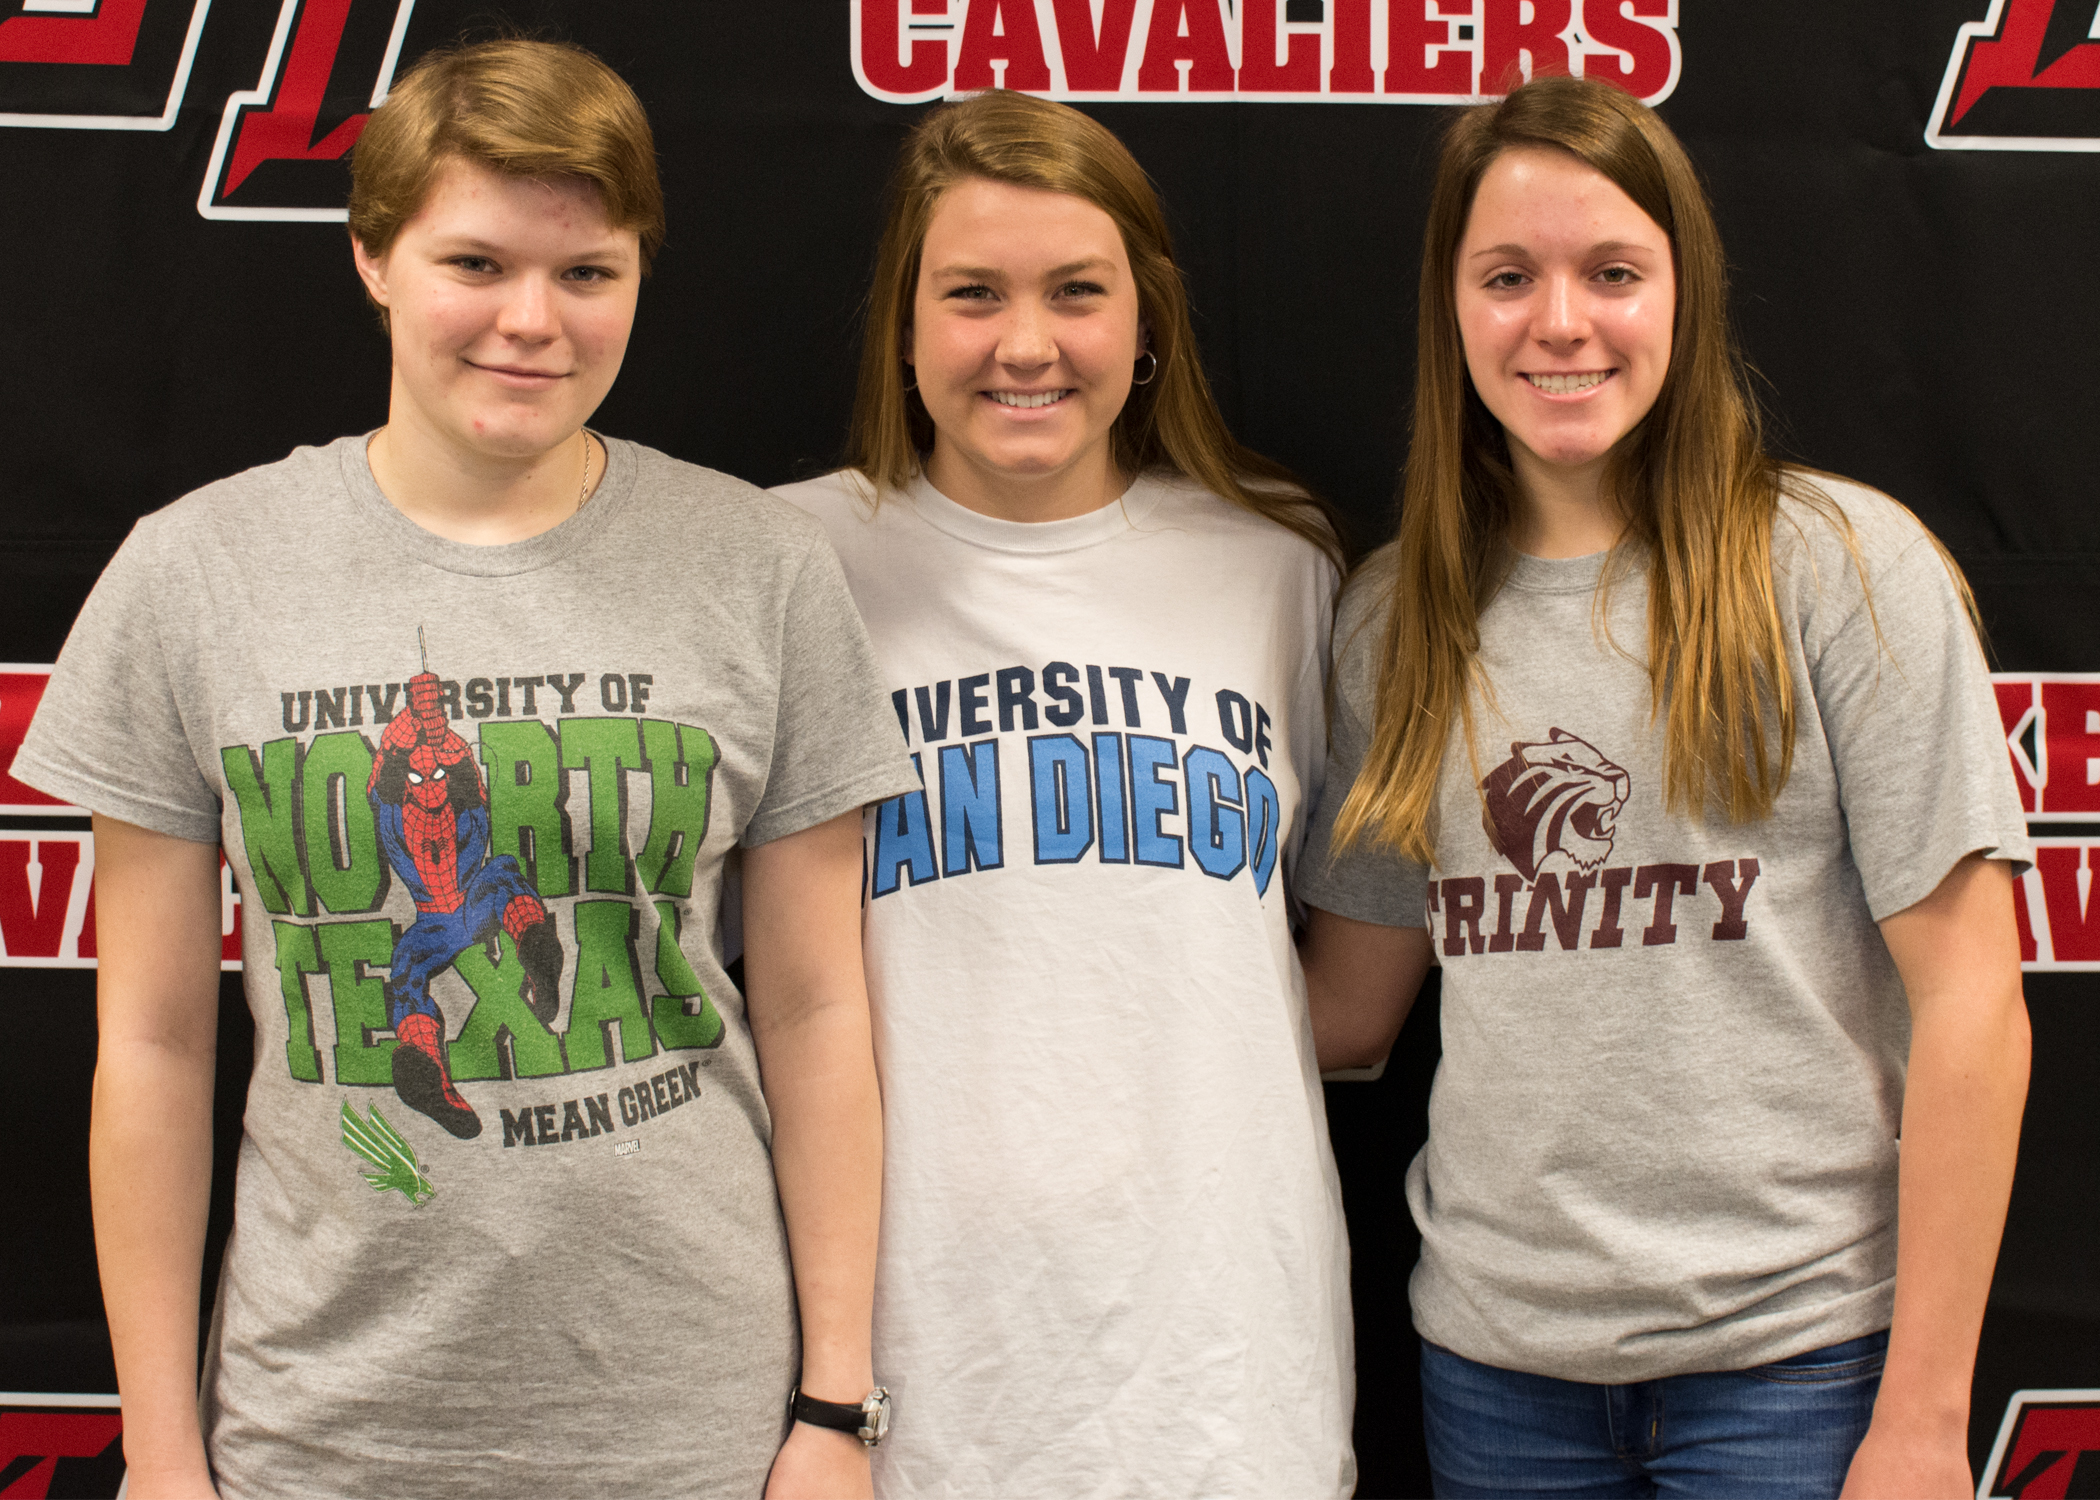 LTHS Swim/Dive (left to right):  Altaira Wallquist  - University of North Texas  Lauren Quincy  - University of San Diego  Logann Khollman  - Trinity University